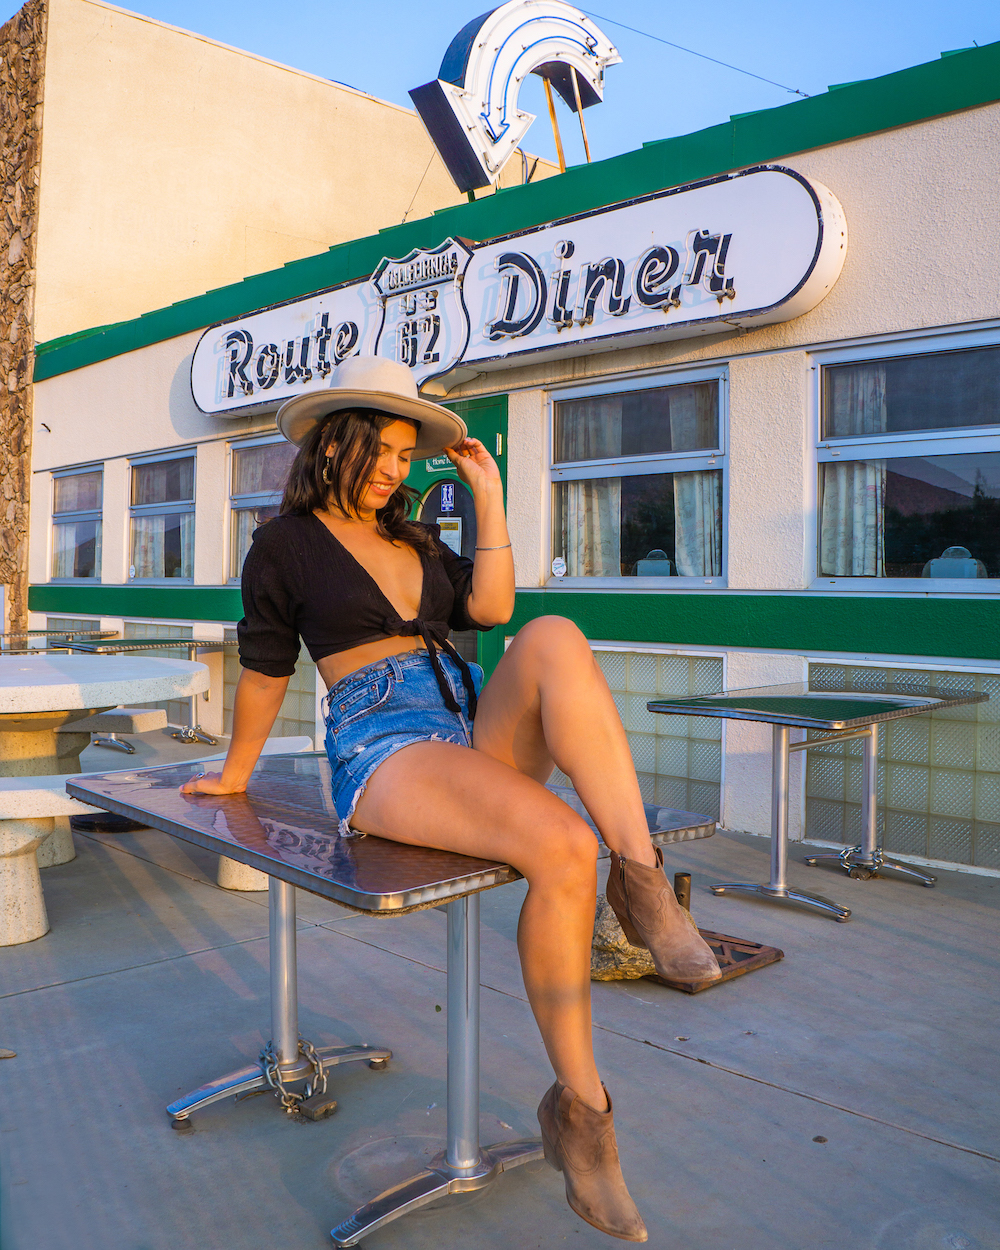 woman at carlas route 62 diner